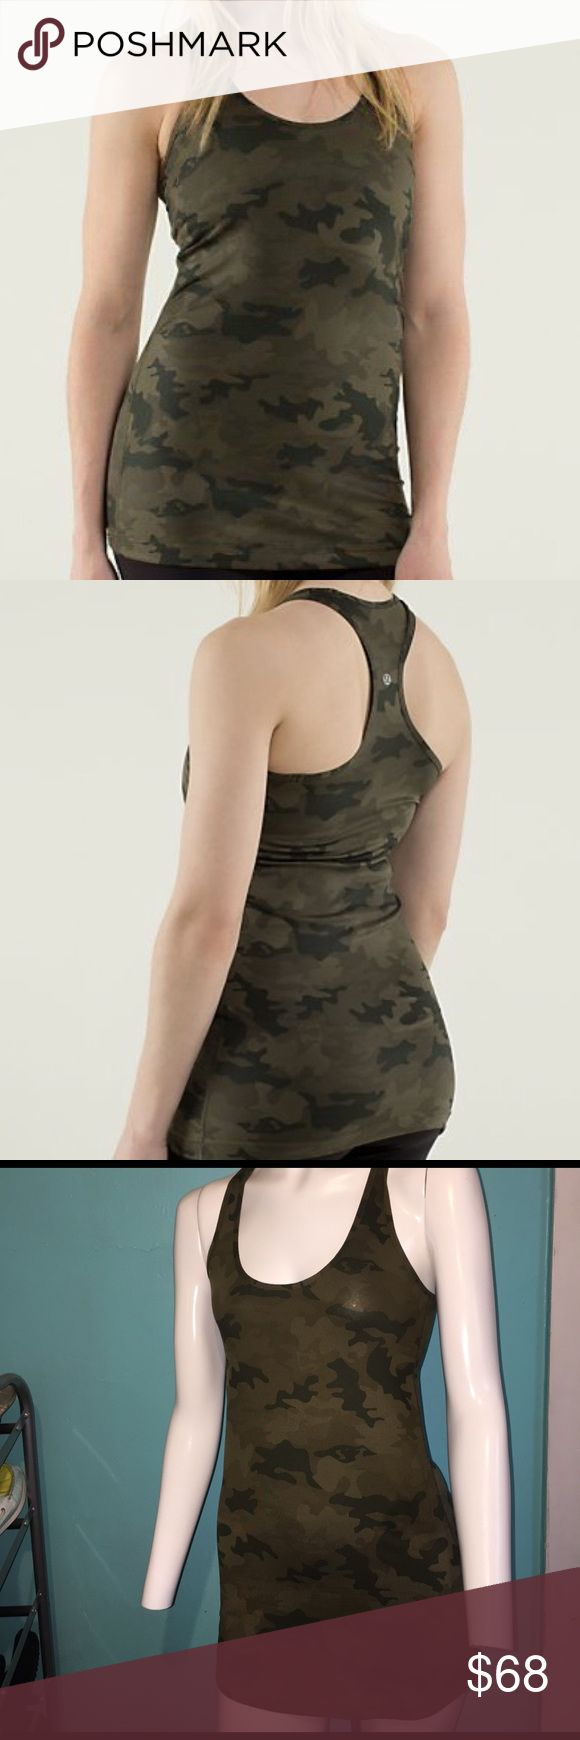 Lululemon camo tank top Looks brand new! Super cute green camo color- size 6- very sight after color/pattern. lululemon athletica Tops Tank Tops